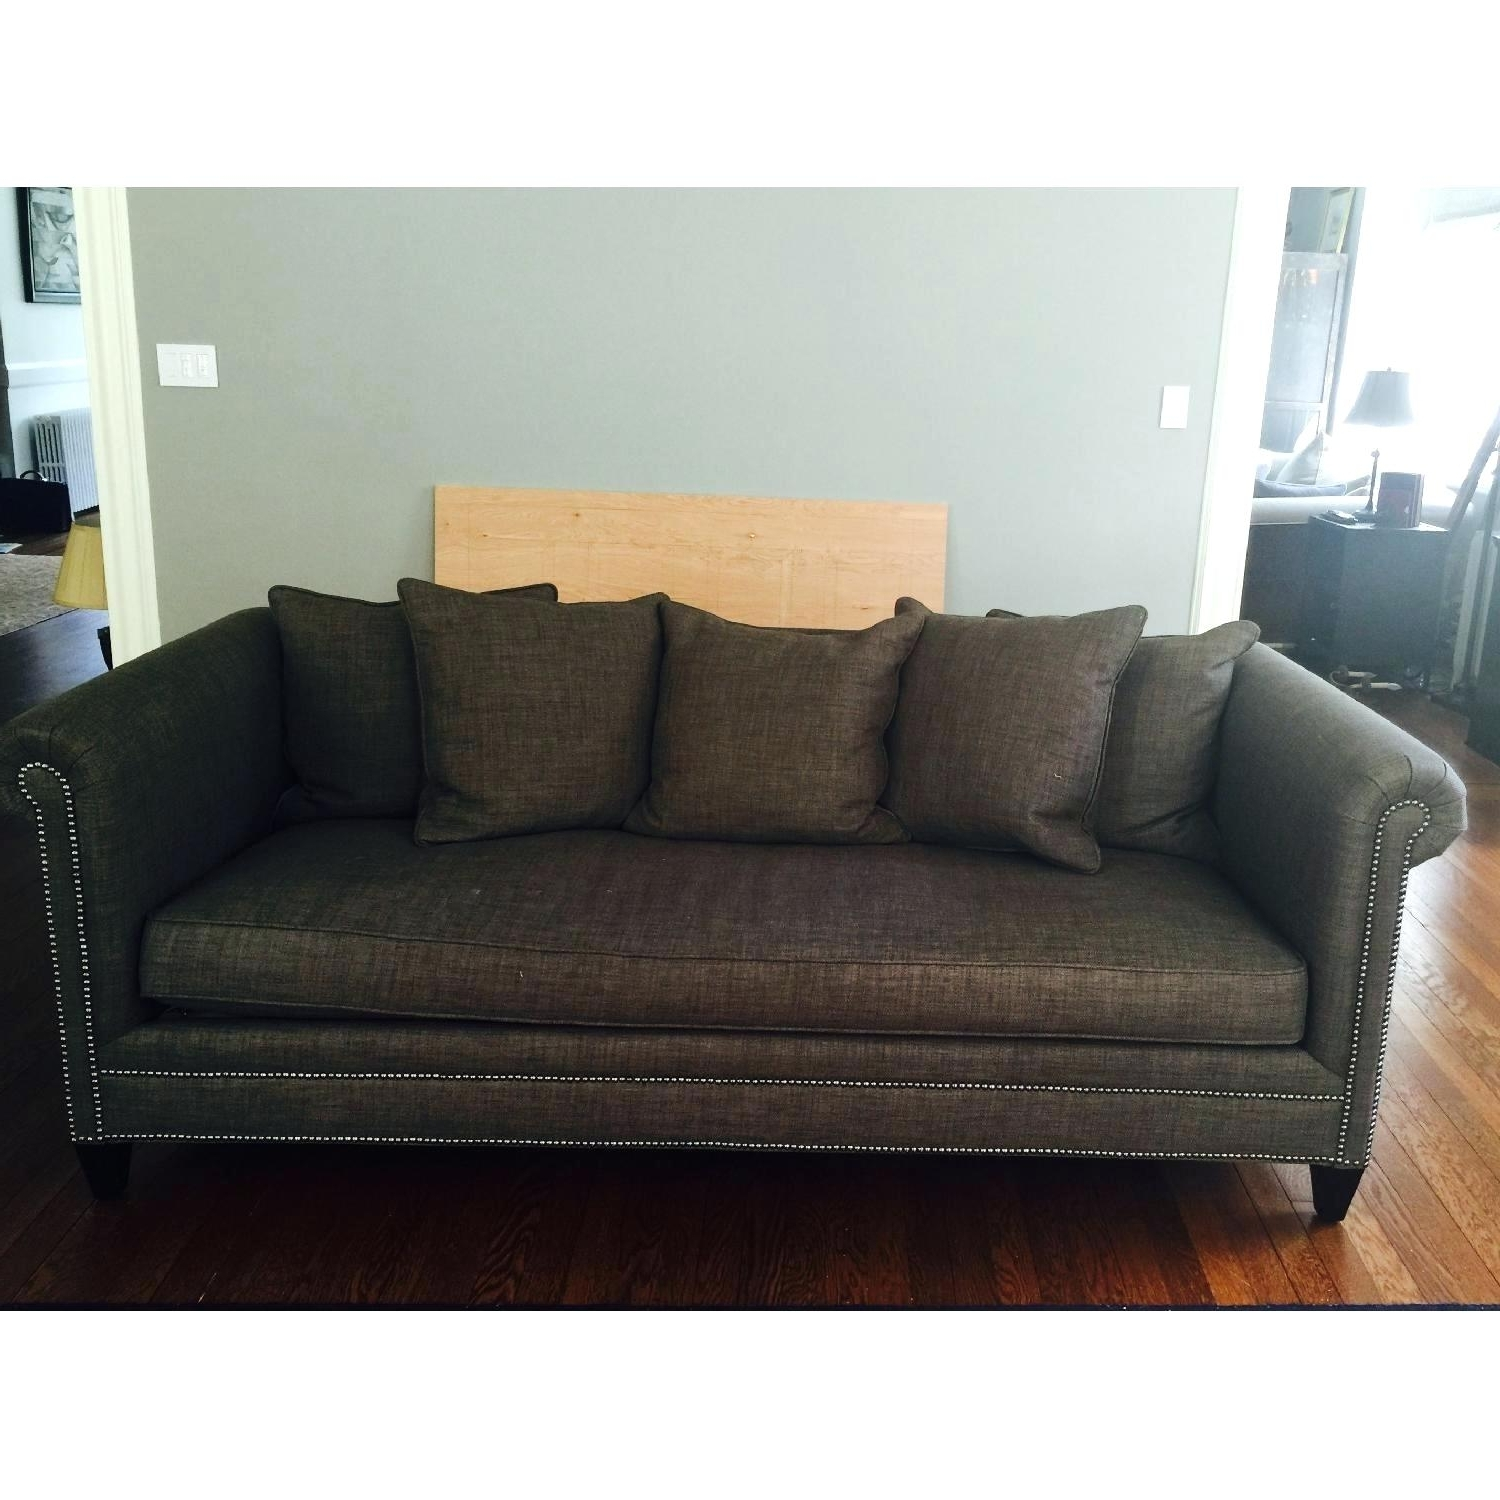 Preferred Durham Region Sectional Sofas Pertaining To Durham Furniture Stores Raleigh Region Ontario Used (View 3 of 15)